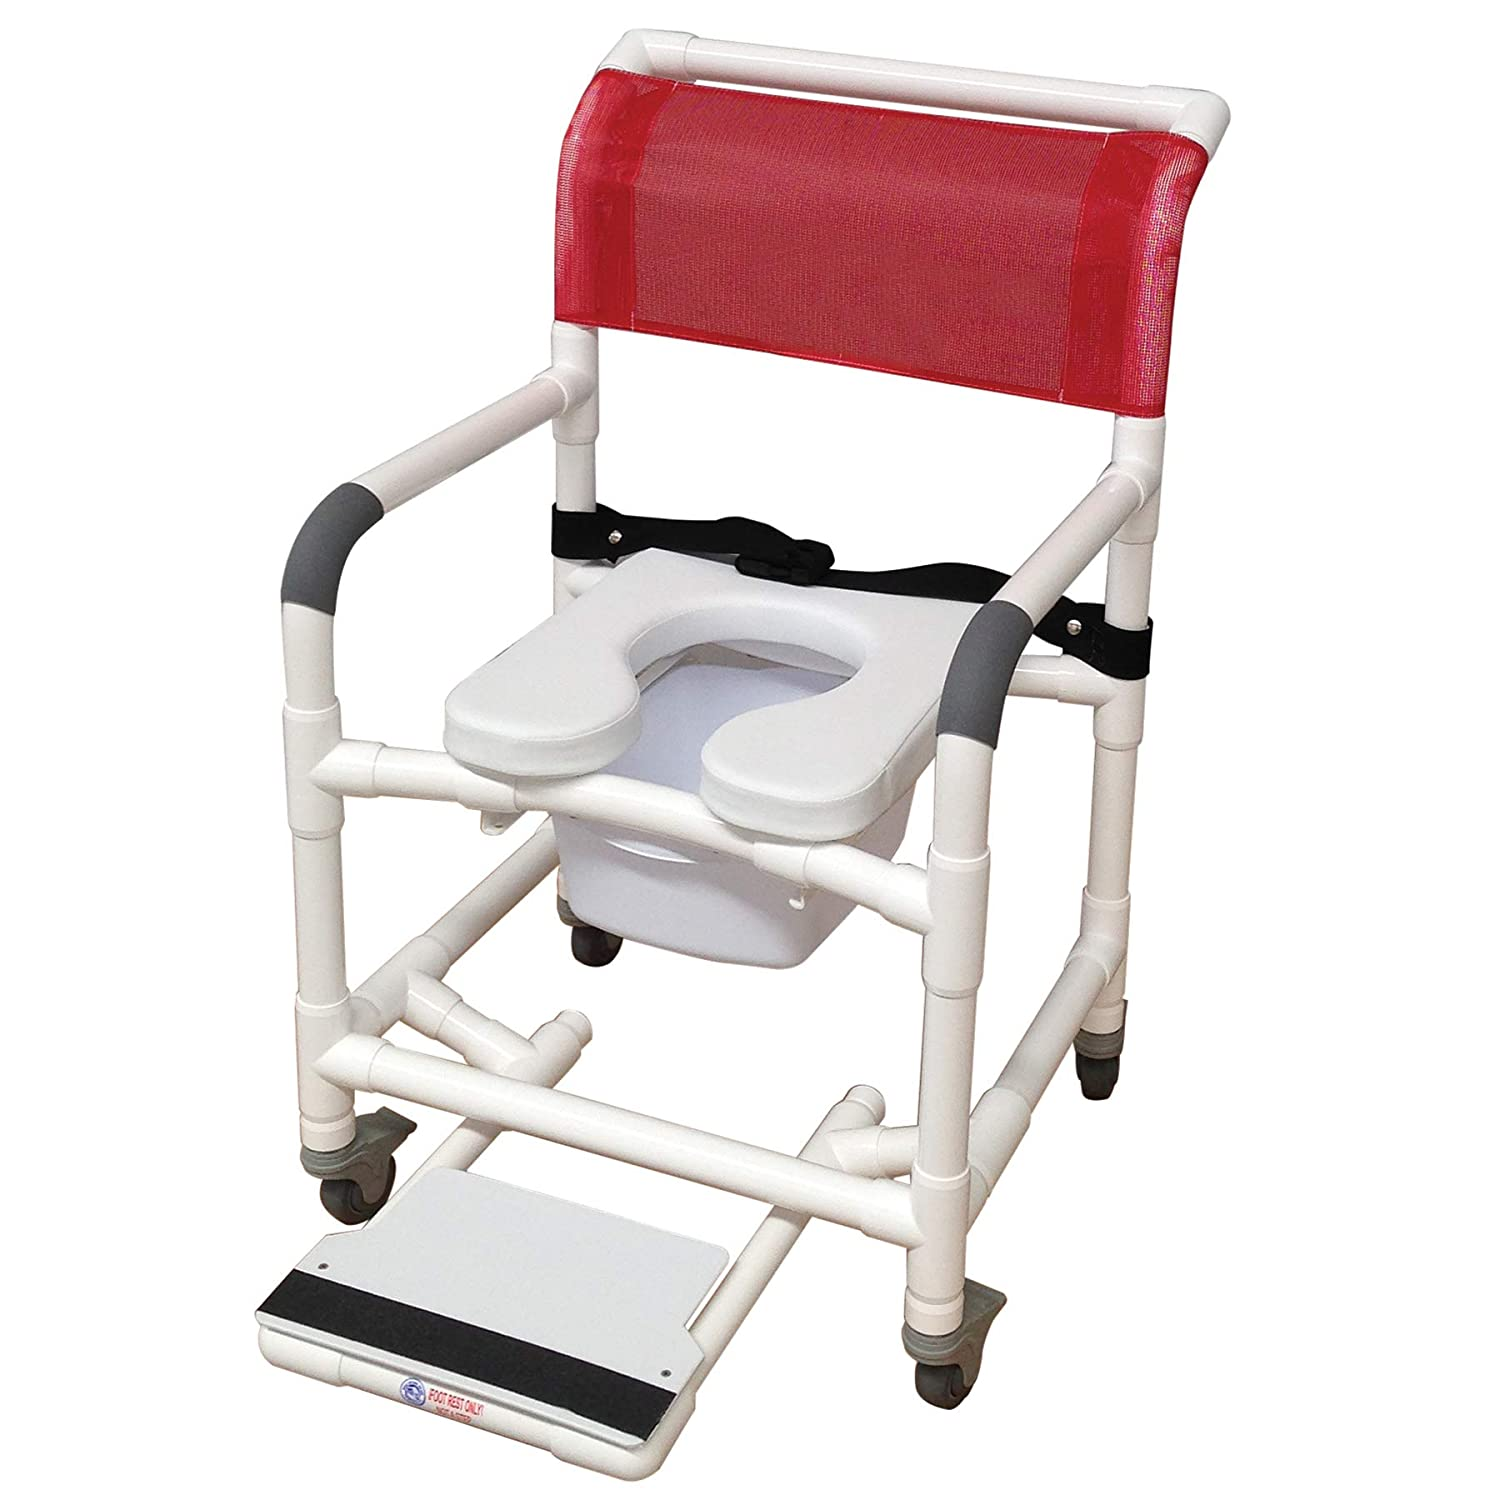 MJM International 118-3TL-SSDE-BB-18-SQ-PAIL-SF Standard Shower Chair with Total Lock Casters Slide Out Footrest Safety Belt Commode Pail and Soft Seat, Royal Blue/Forest Green/Mauve 712WMuwpLyL._SL1500_